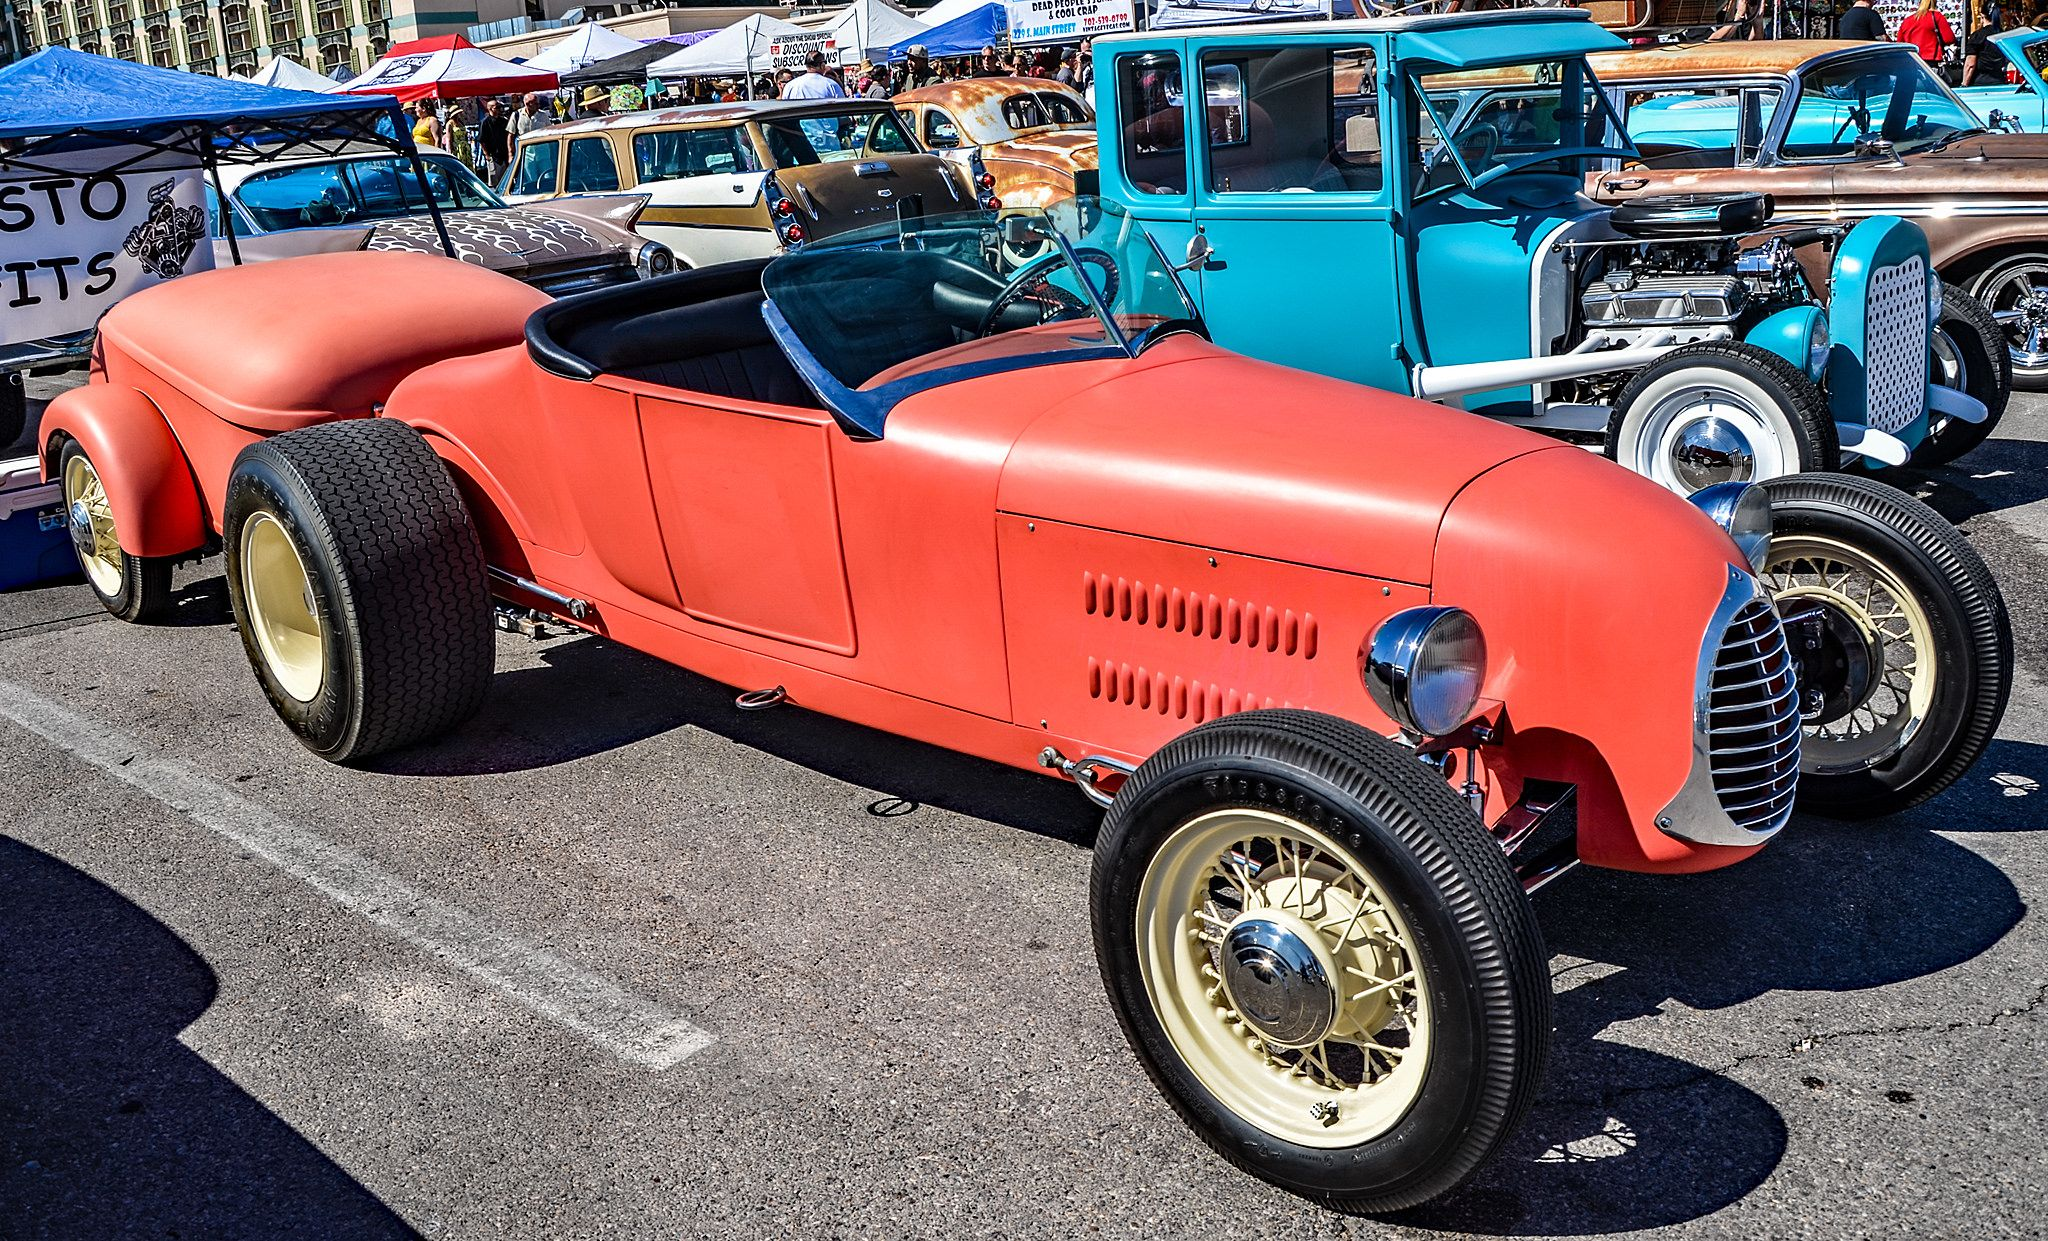 Viva Las Vegas Rockabilly Hot Rodder Car Show Planes And Cars - Viva las vegas car show 2018